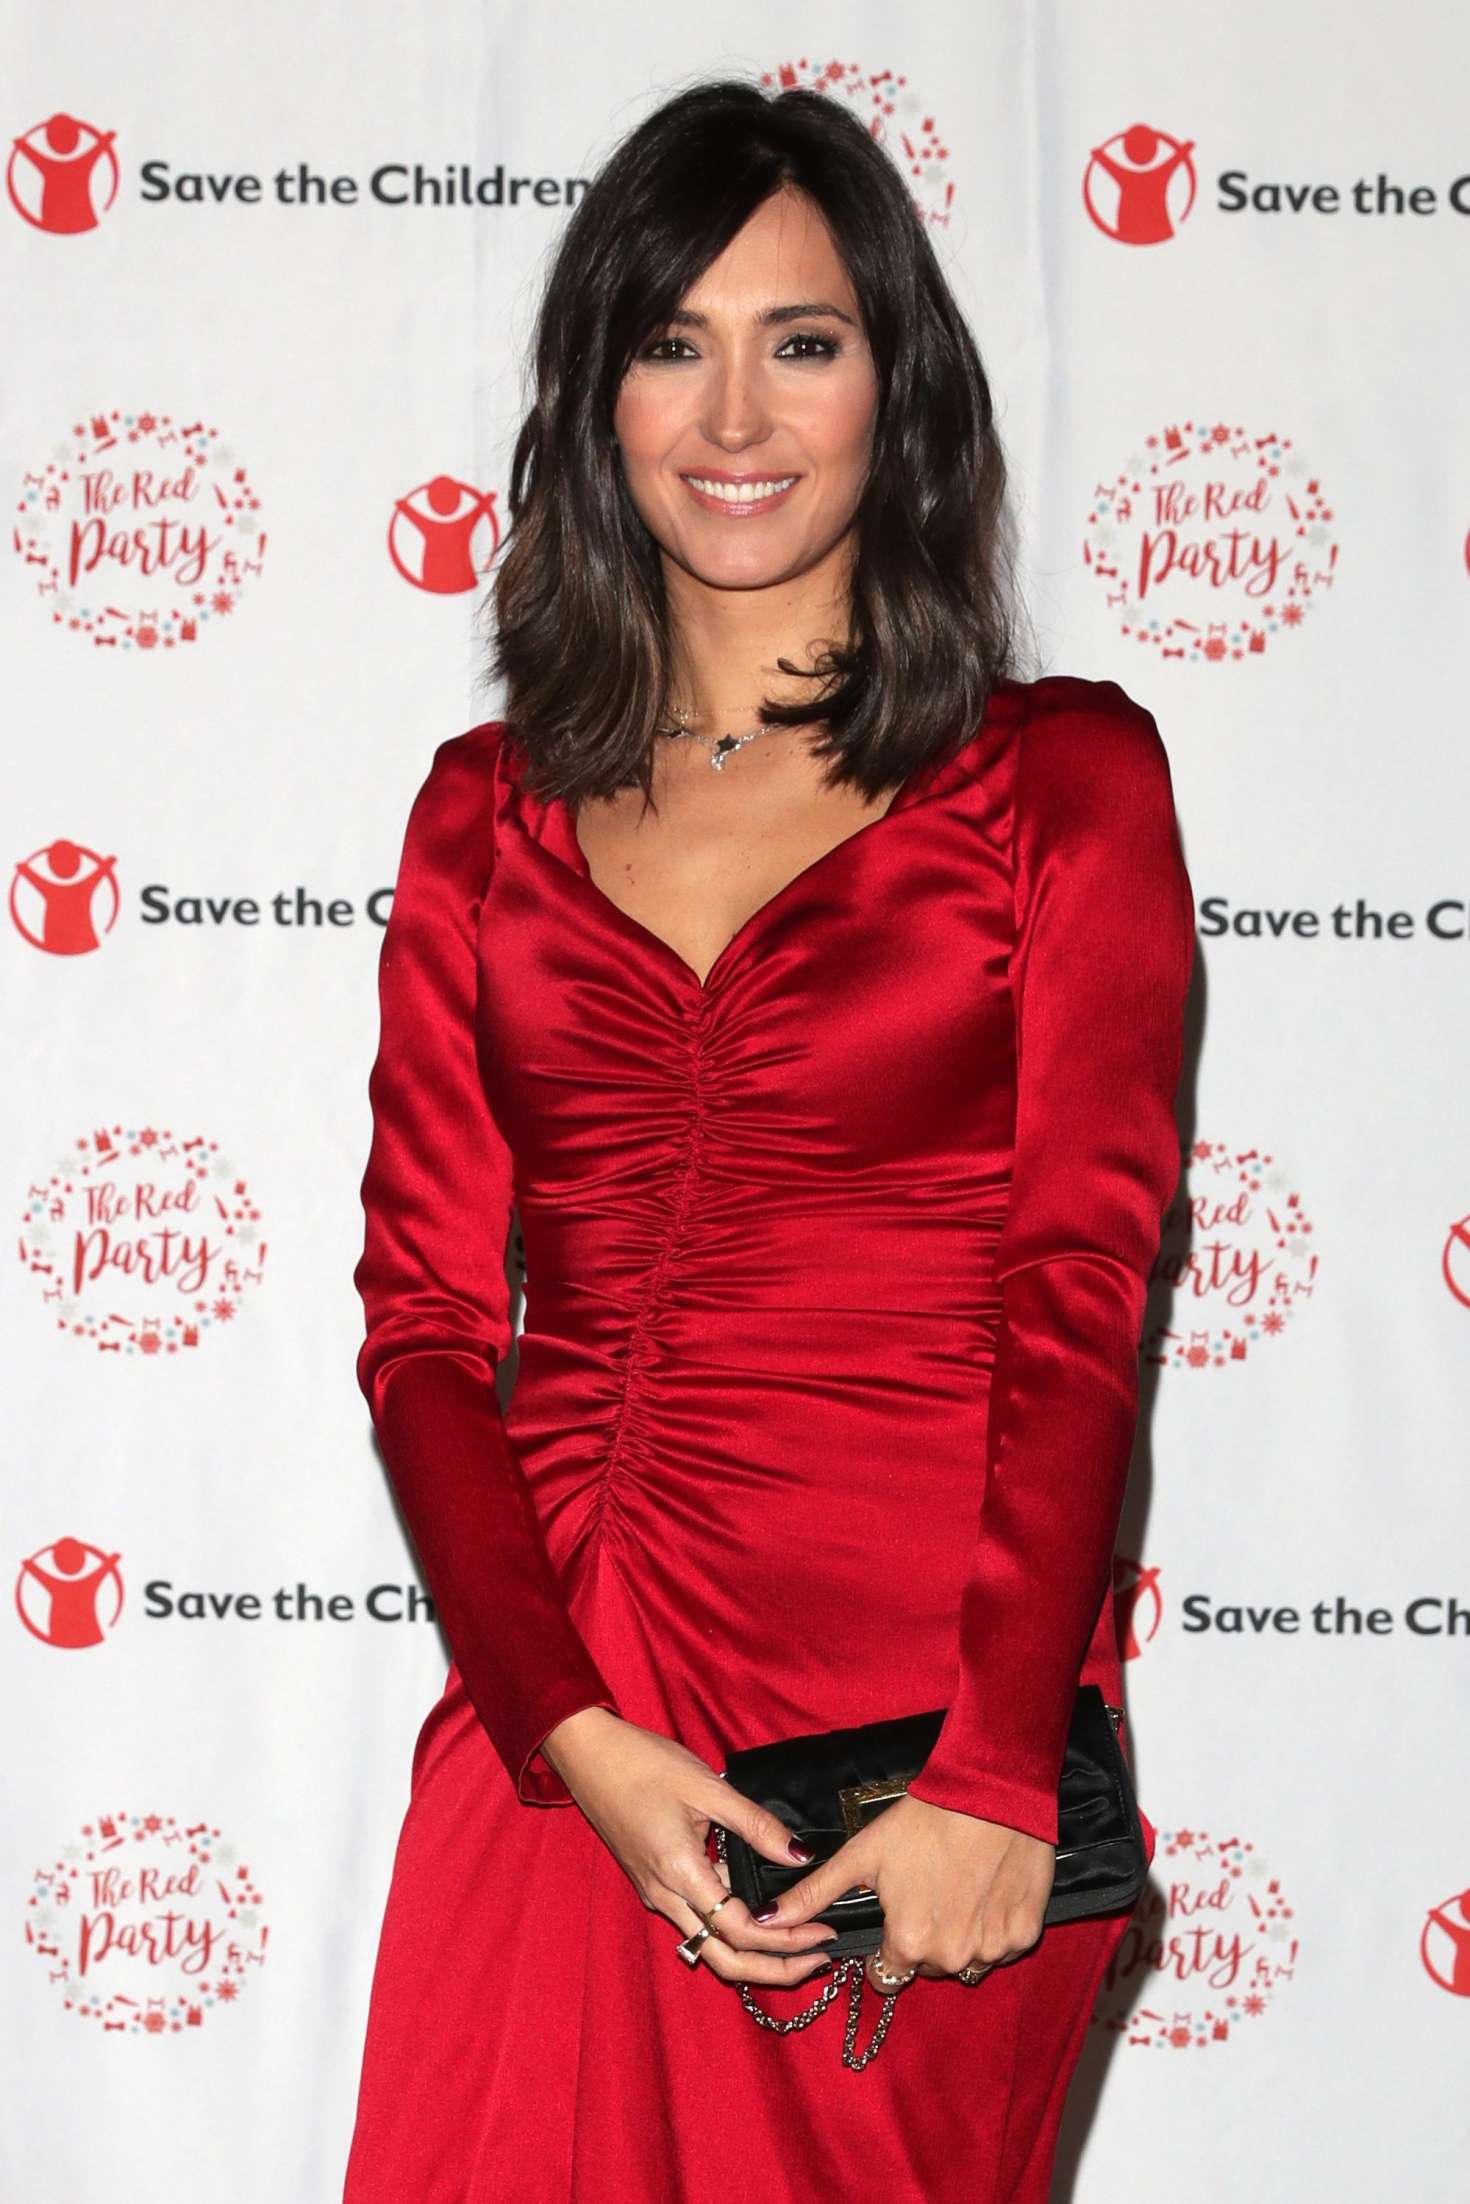 Caterina Balivo Save The Children Charity Party In Milan